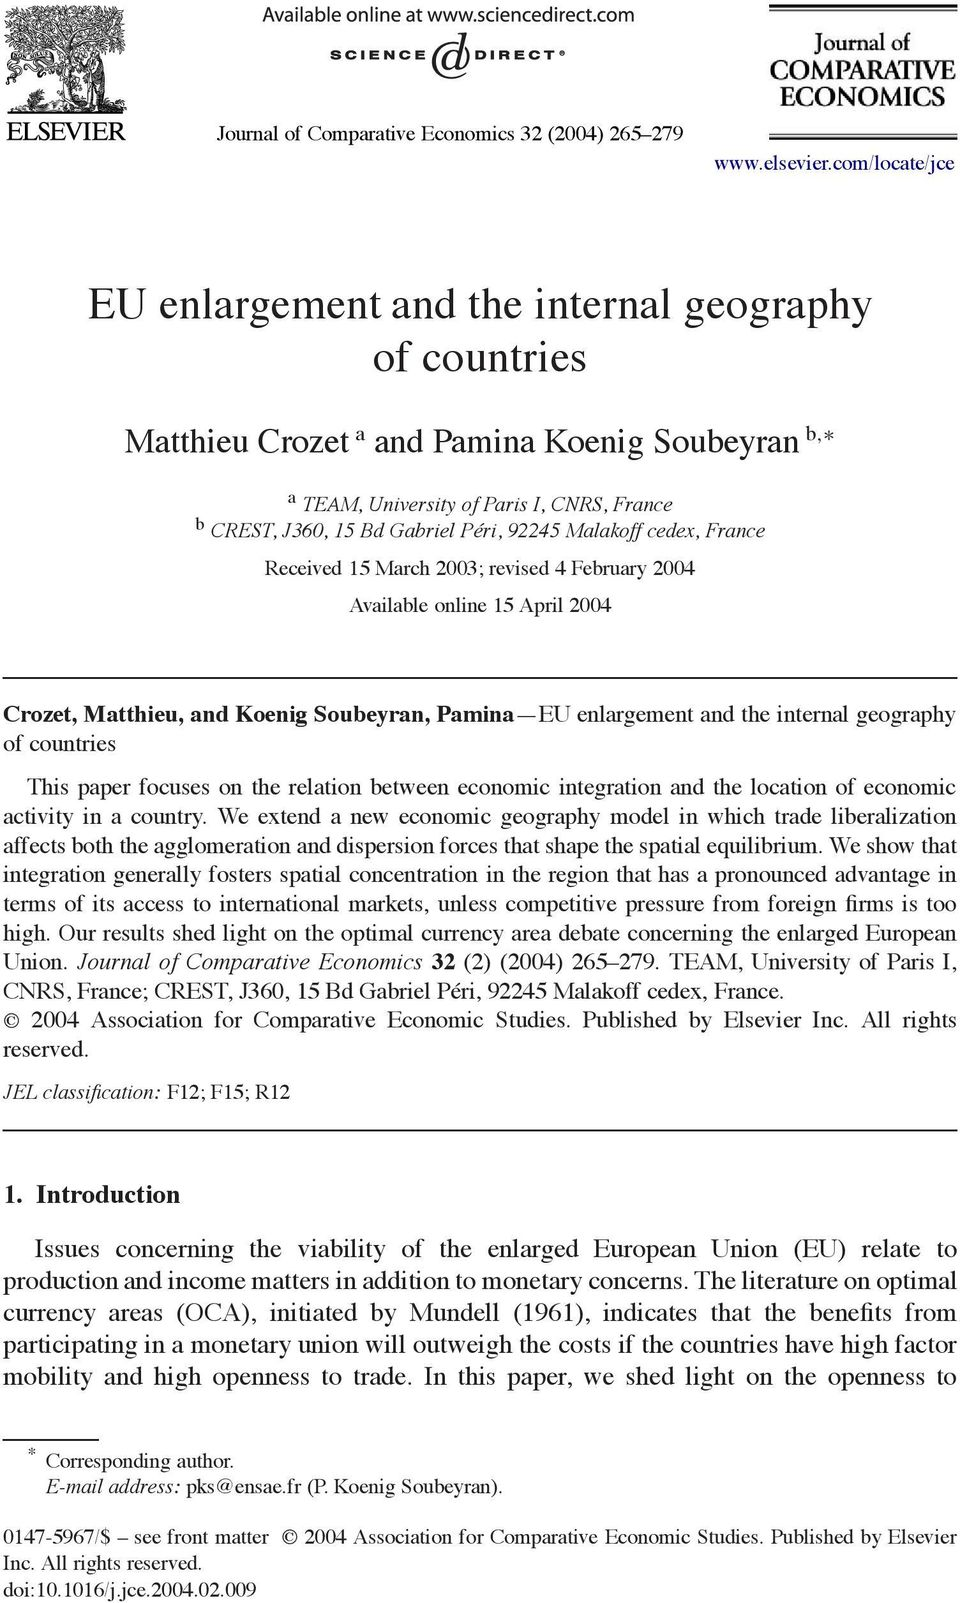 92245 Malakoff cedex, France Received 15 March 2003; revised 4 February 2004 Available online 15 April 2004 Crozet, Matthieu, and Koenig Soubeyran, Pamina EU enlargement and the internal geography of